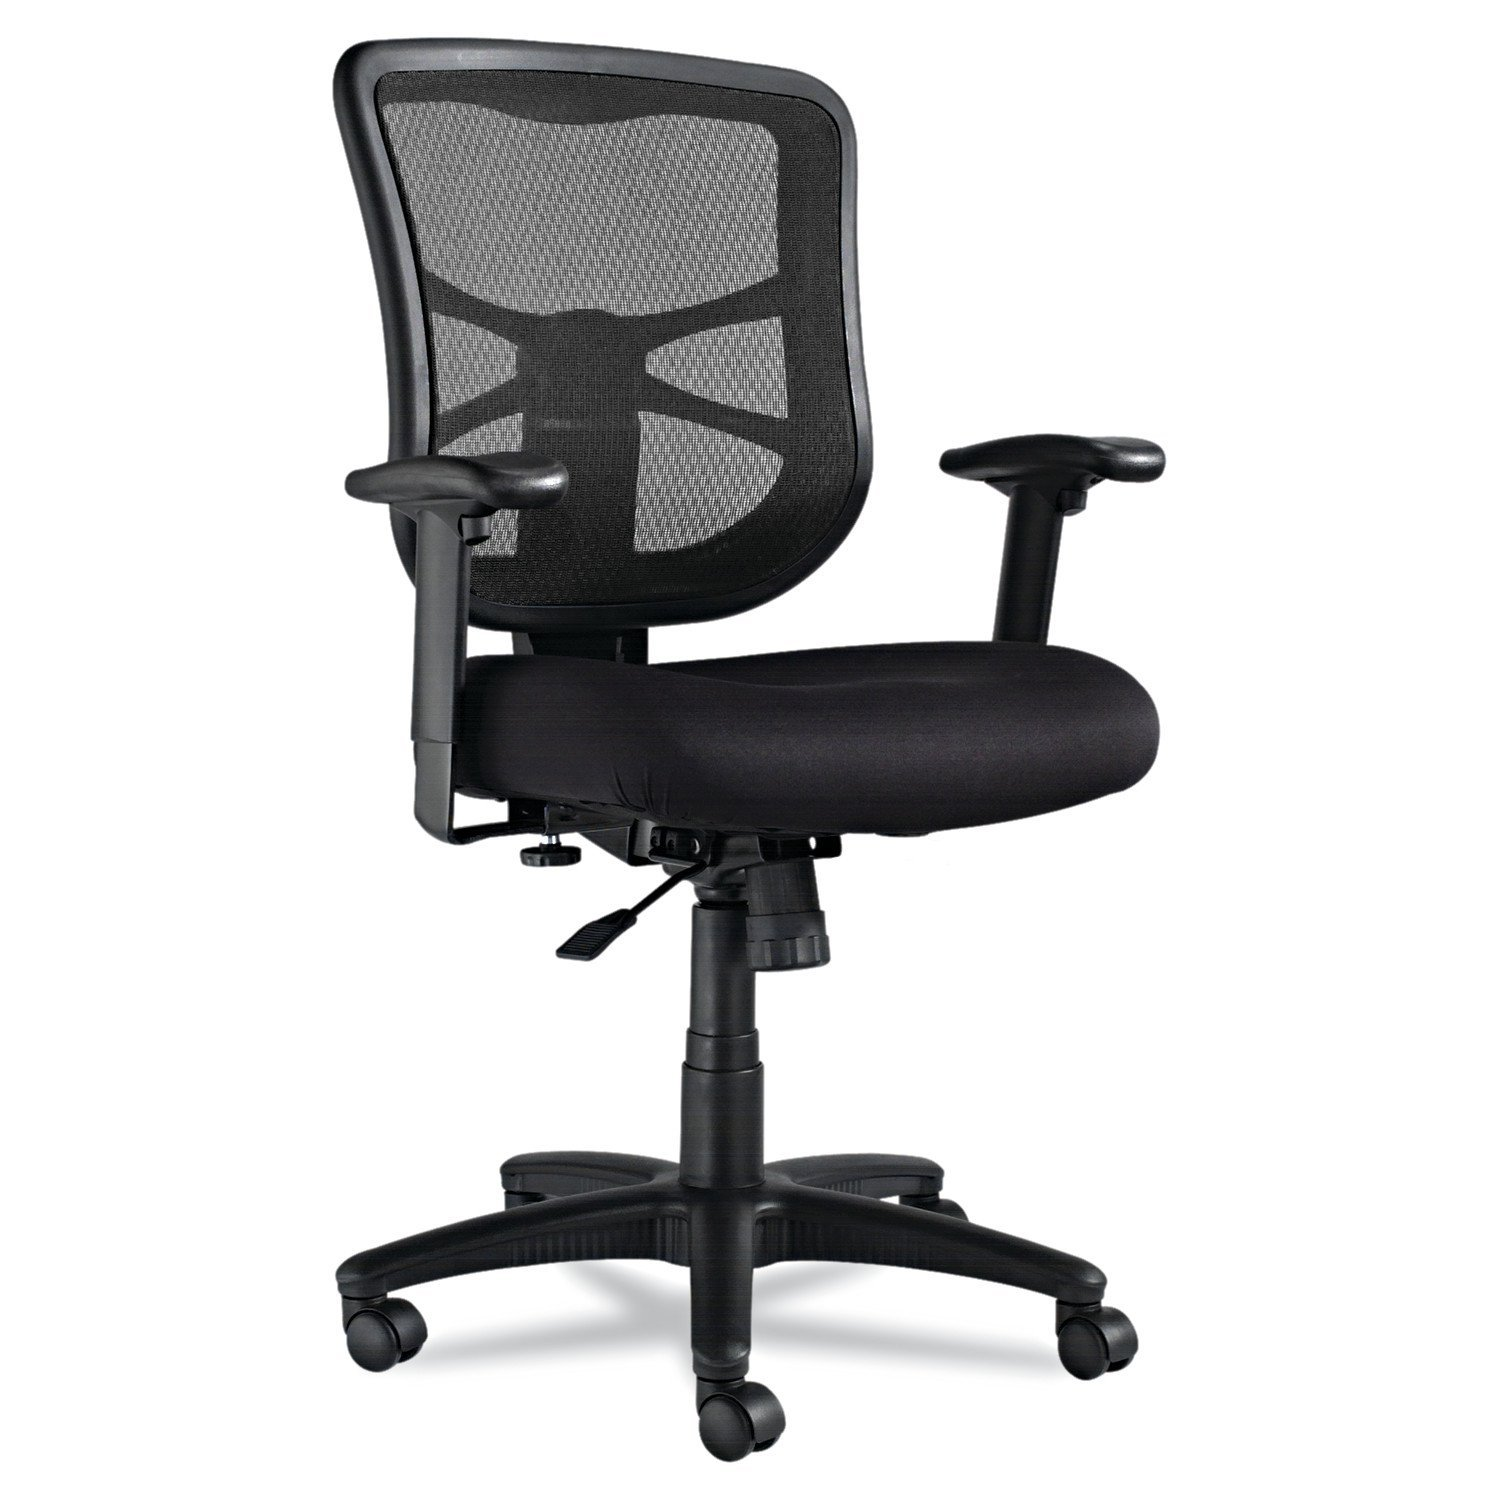 office chair for back support